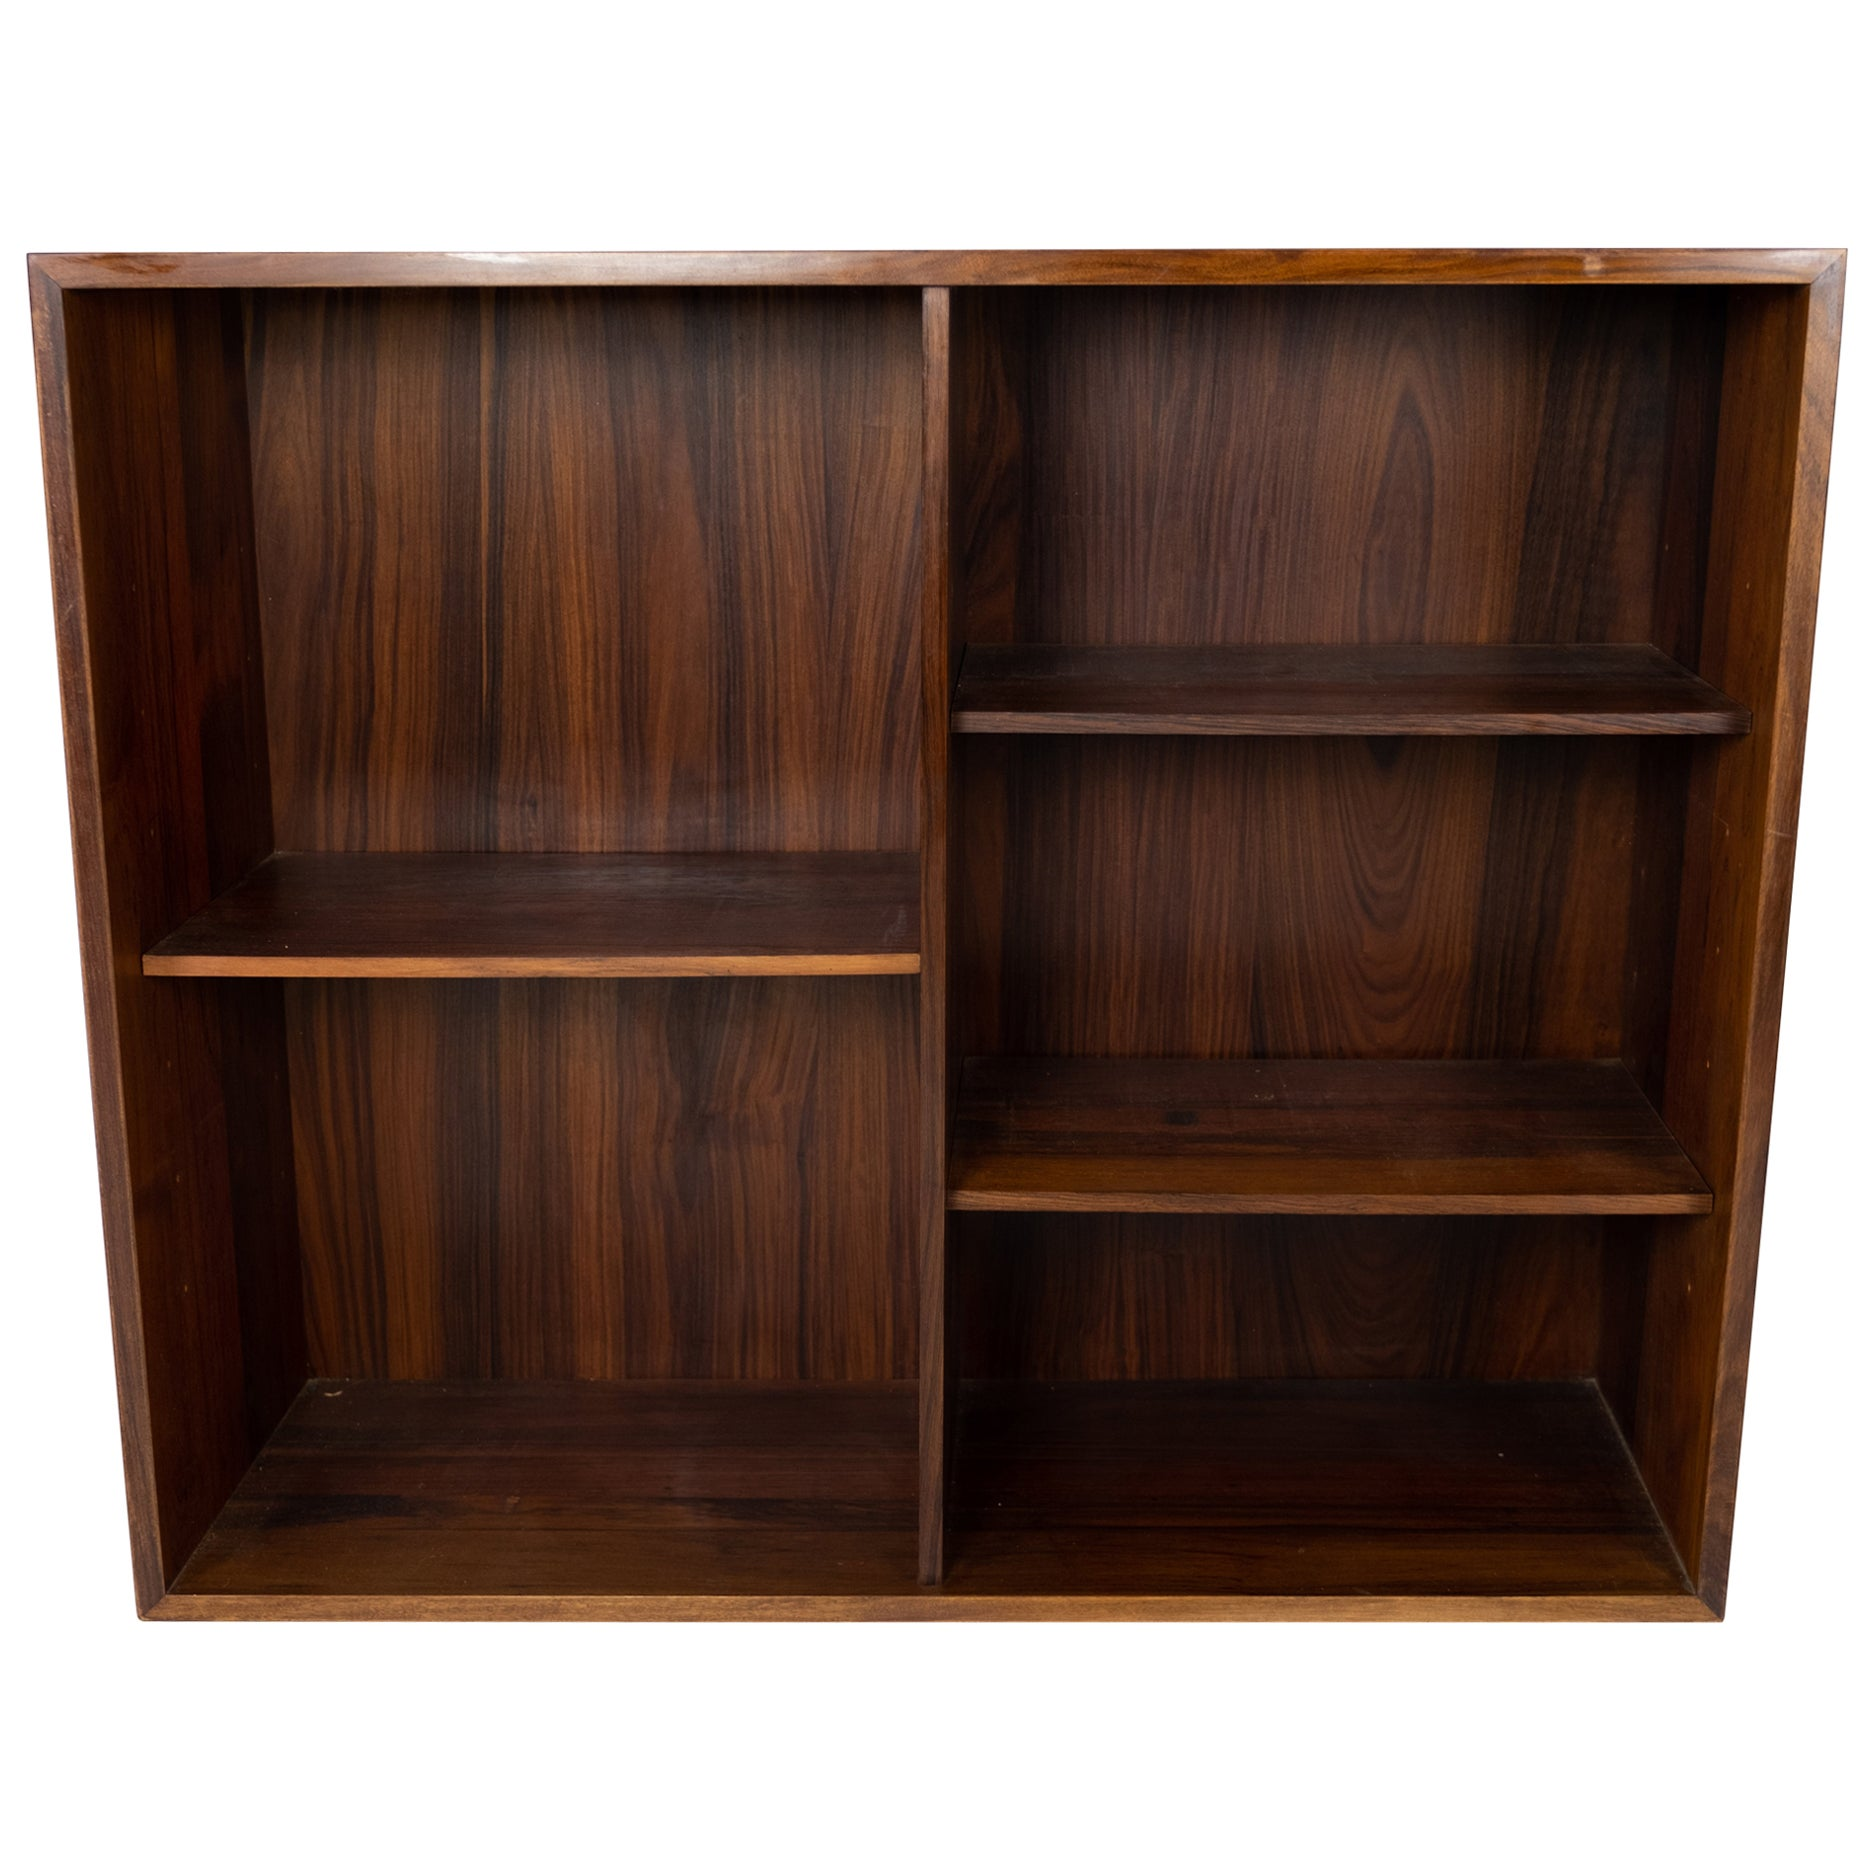 Bookcase in Rosewood of Danish Design from the 1960s